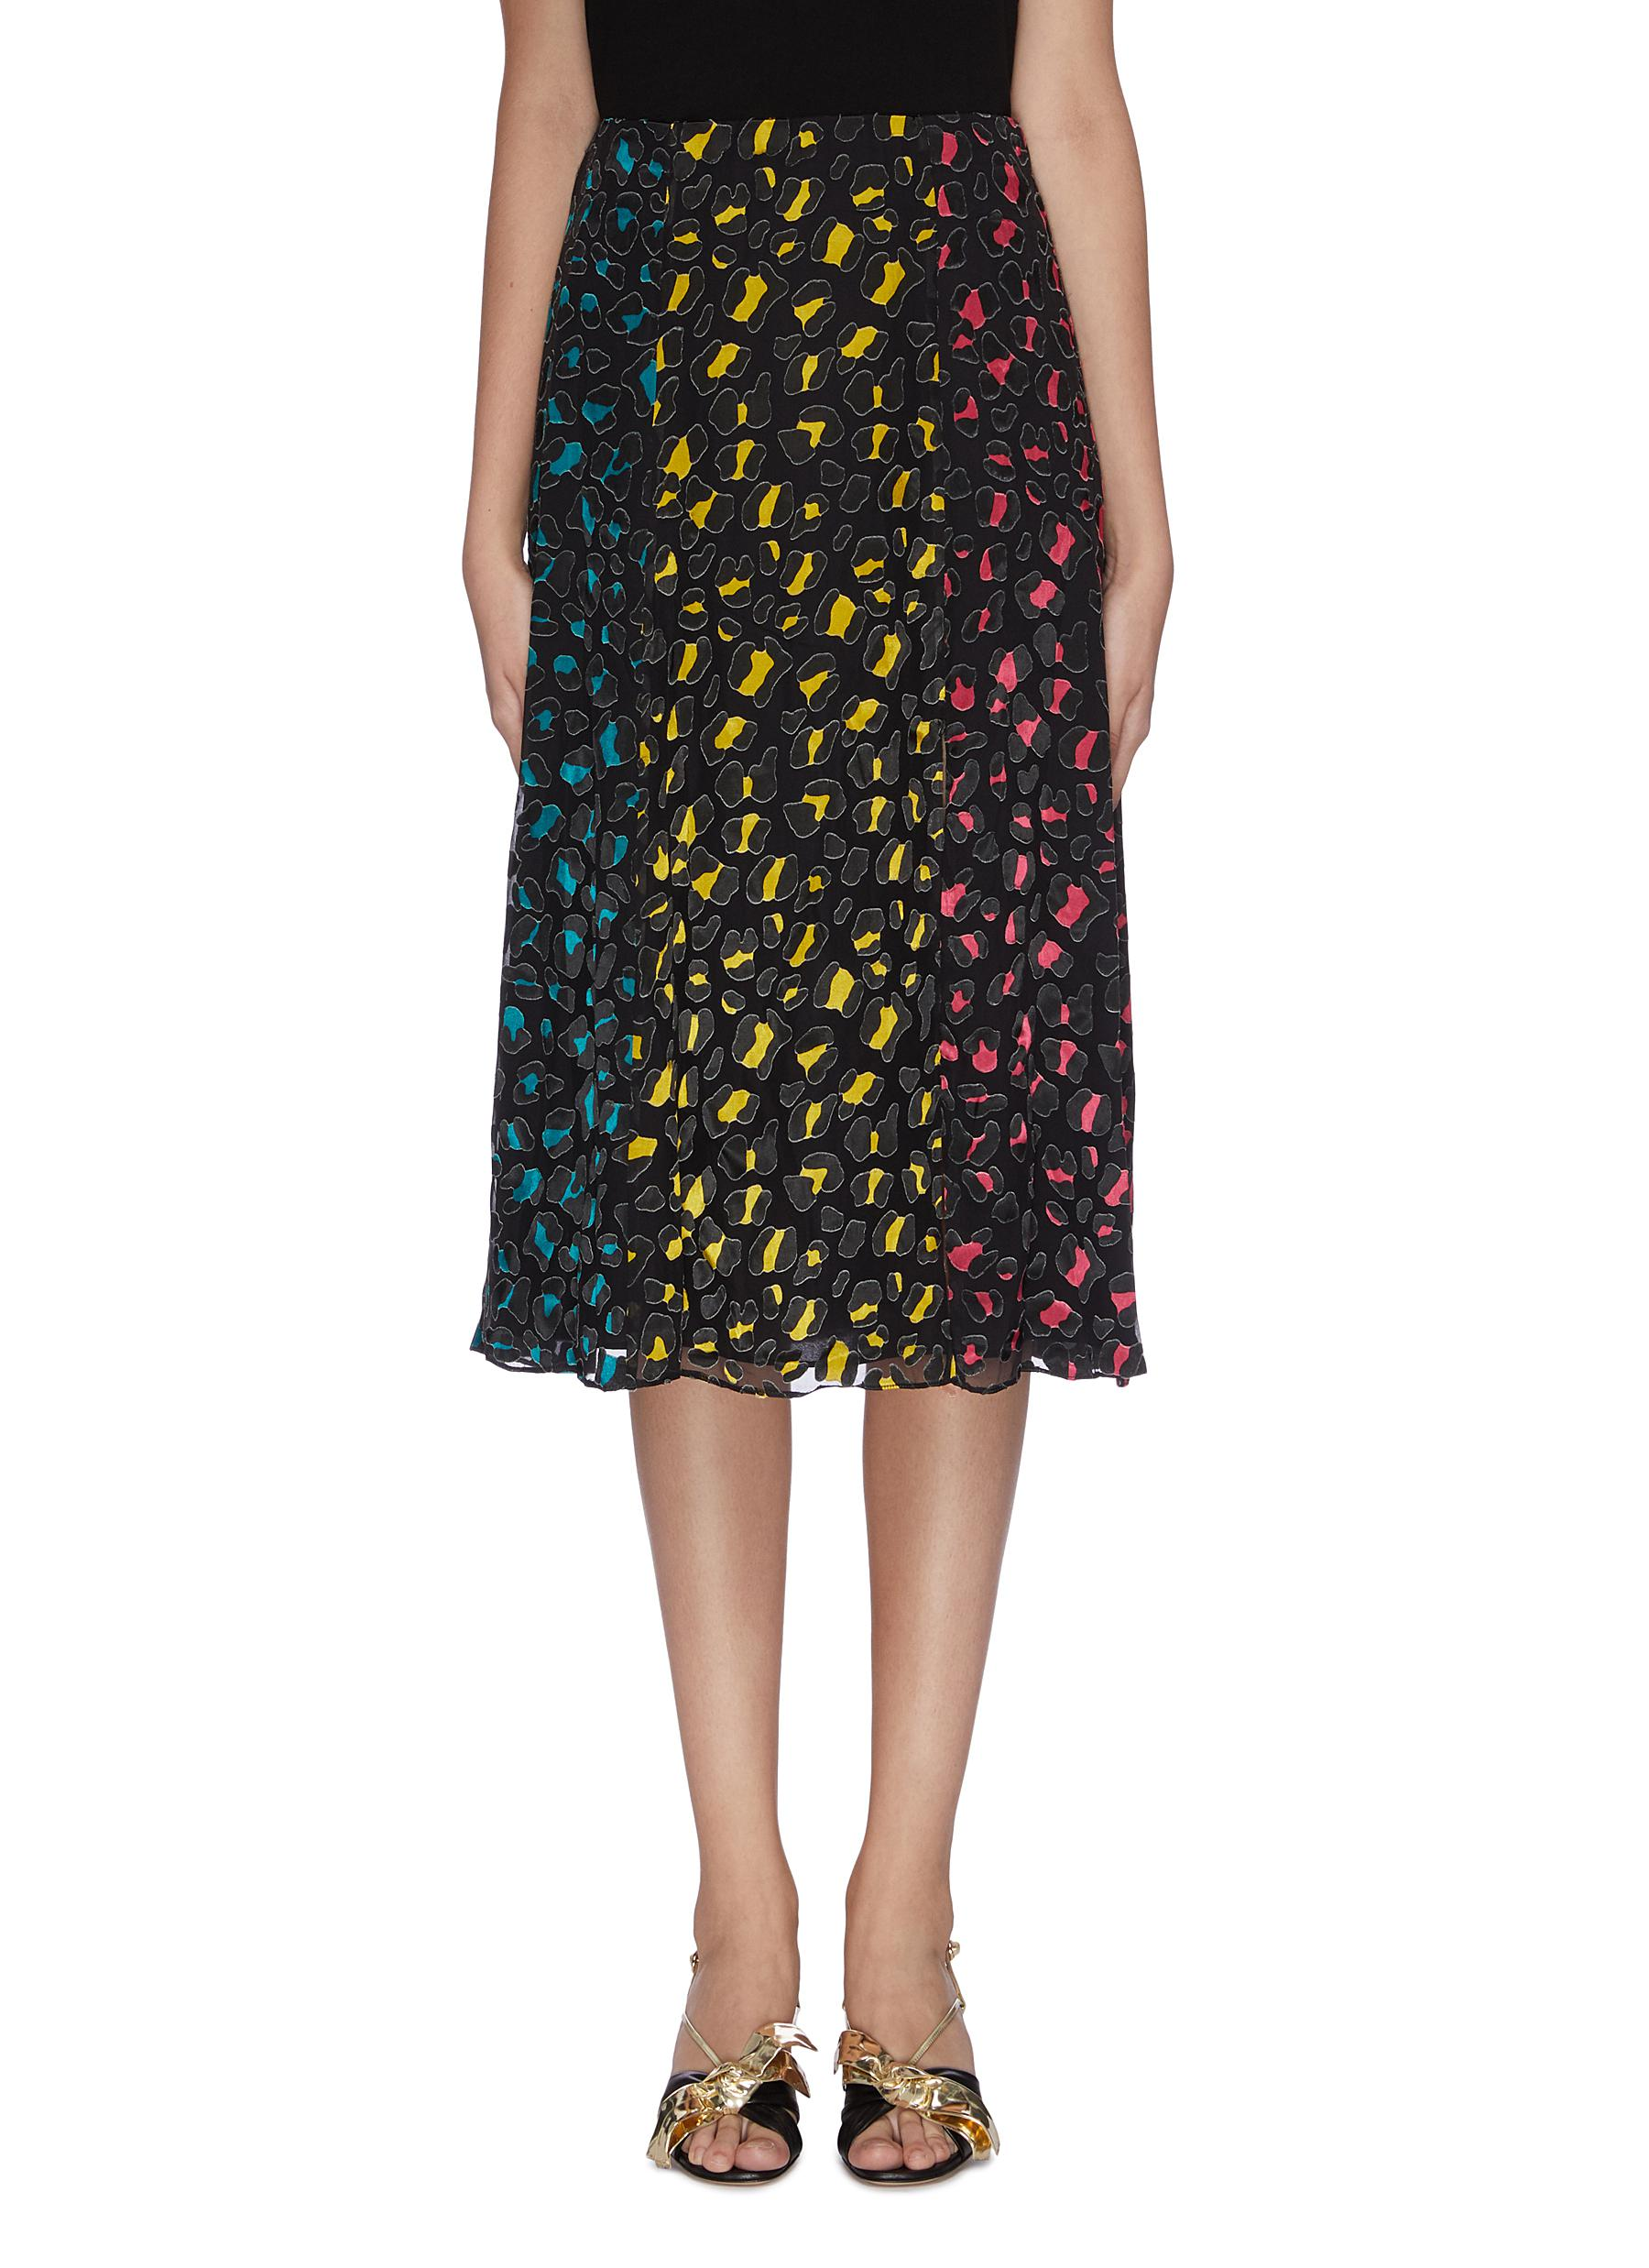 Jenessa panelled leopard print colourblock slit hem skirt by Alice + Olivia